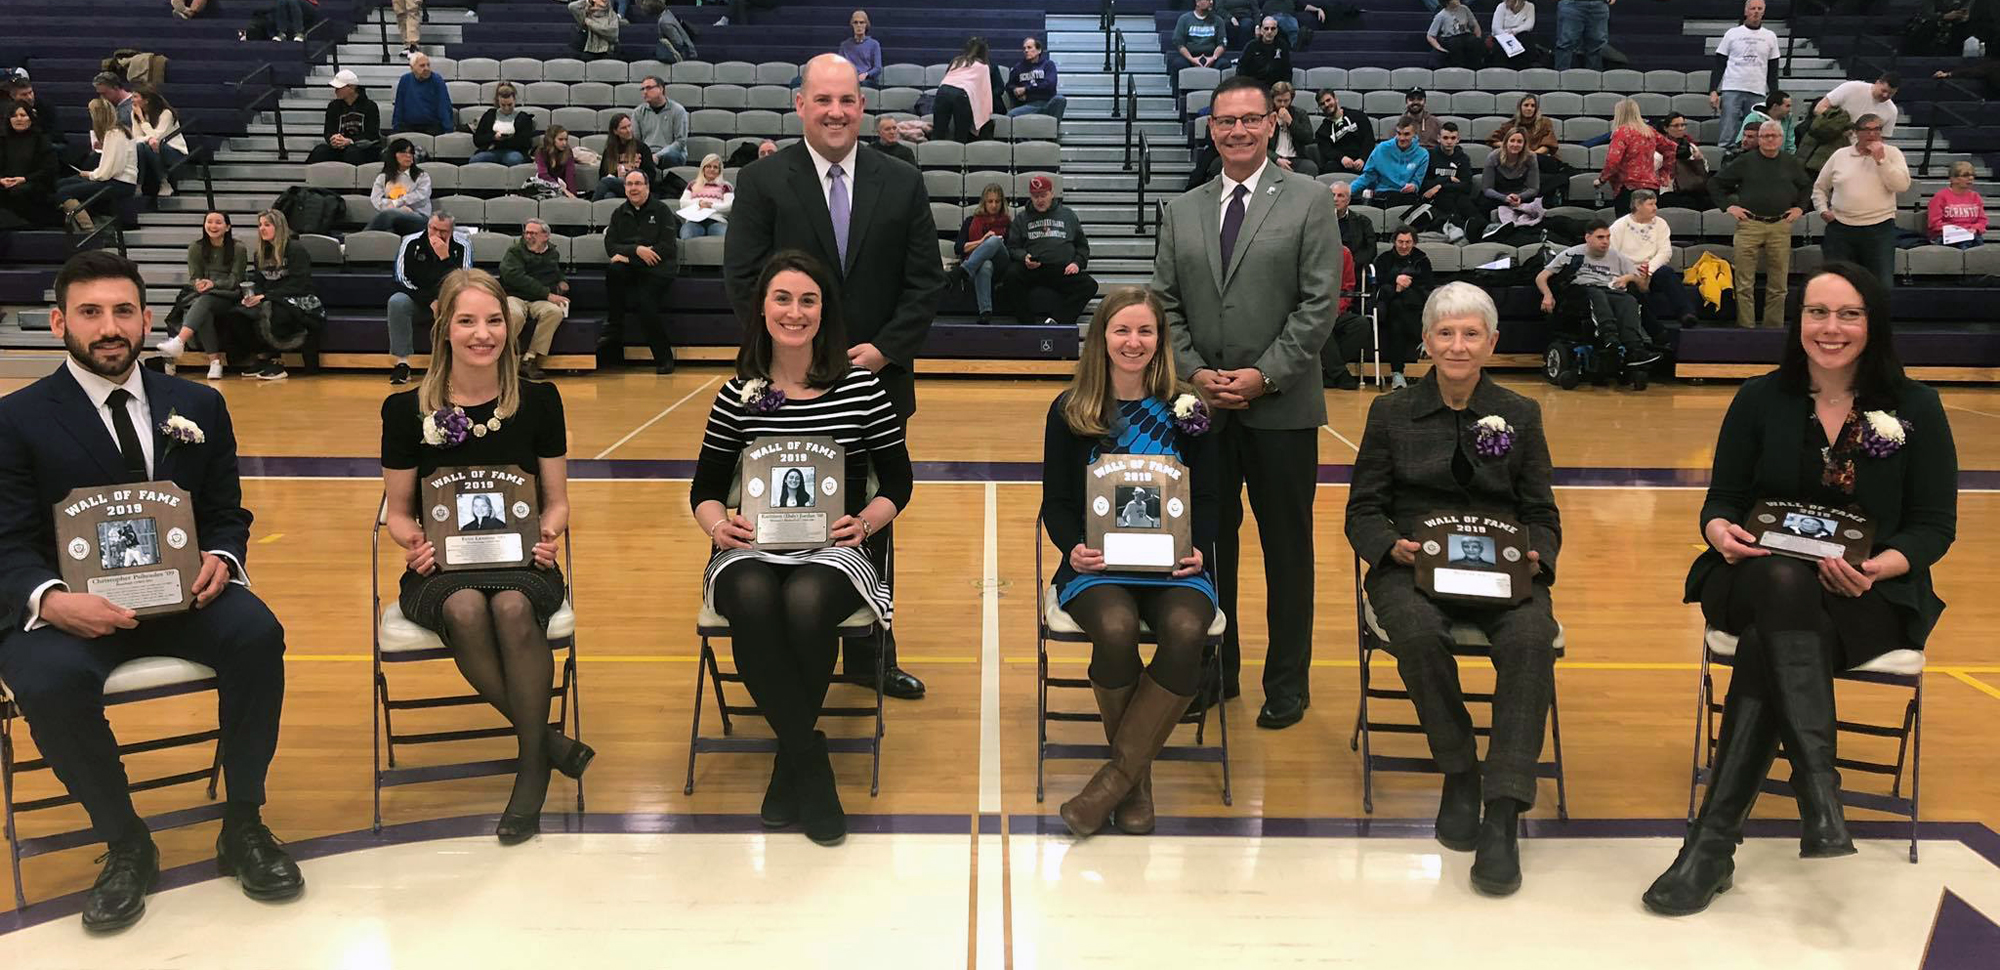 The 2019 Wall of Fame class sitting (L to R): Chris Psihoules '09, Erin (O'Connor) Lentini '09, Kathleen (Daly) Jordan '08, Liz (O'Connor) Huck '04, Beth Howlett and Brooke (Hinkley) Ferro '08. Standing (L to R): Dr. Bobby Davis, Vice President for Student Life & Dave Martin, Direcctor of Athletics.